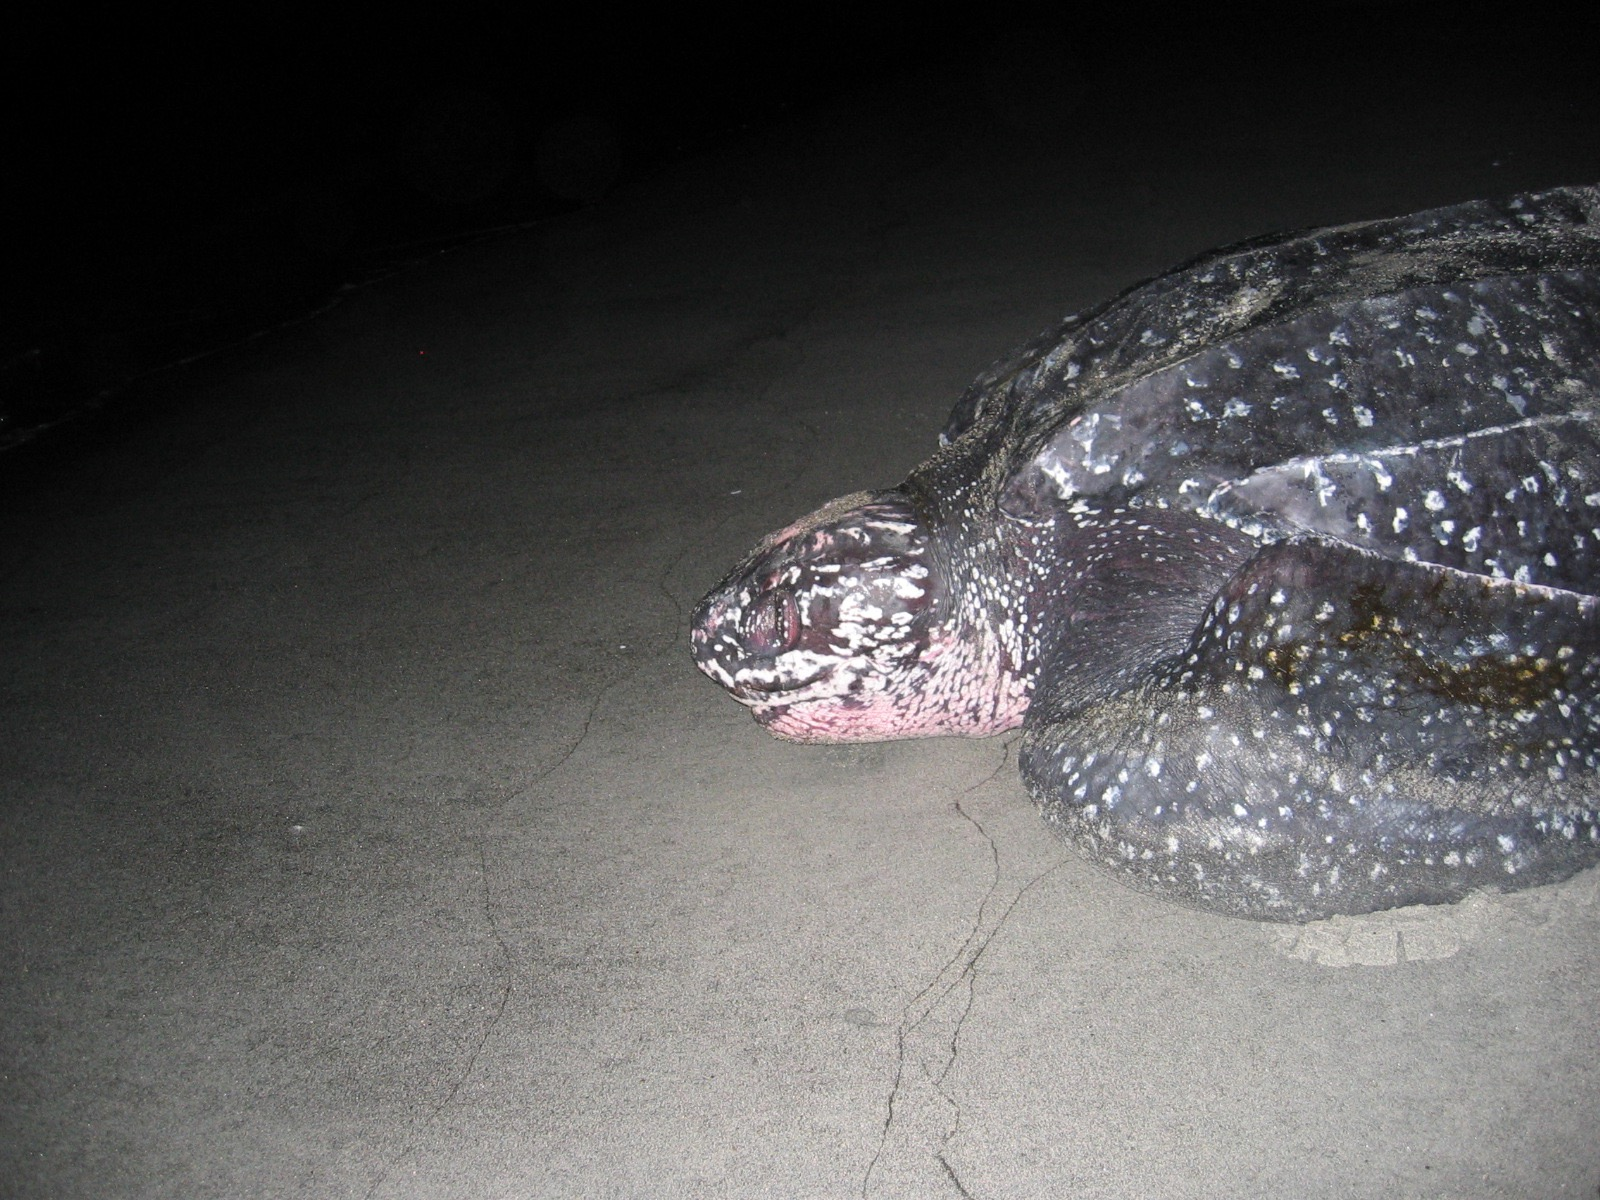 Falling in Love with Sea Turtles